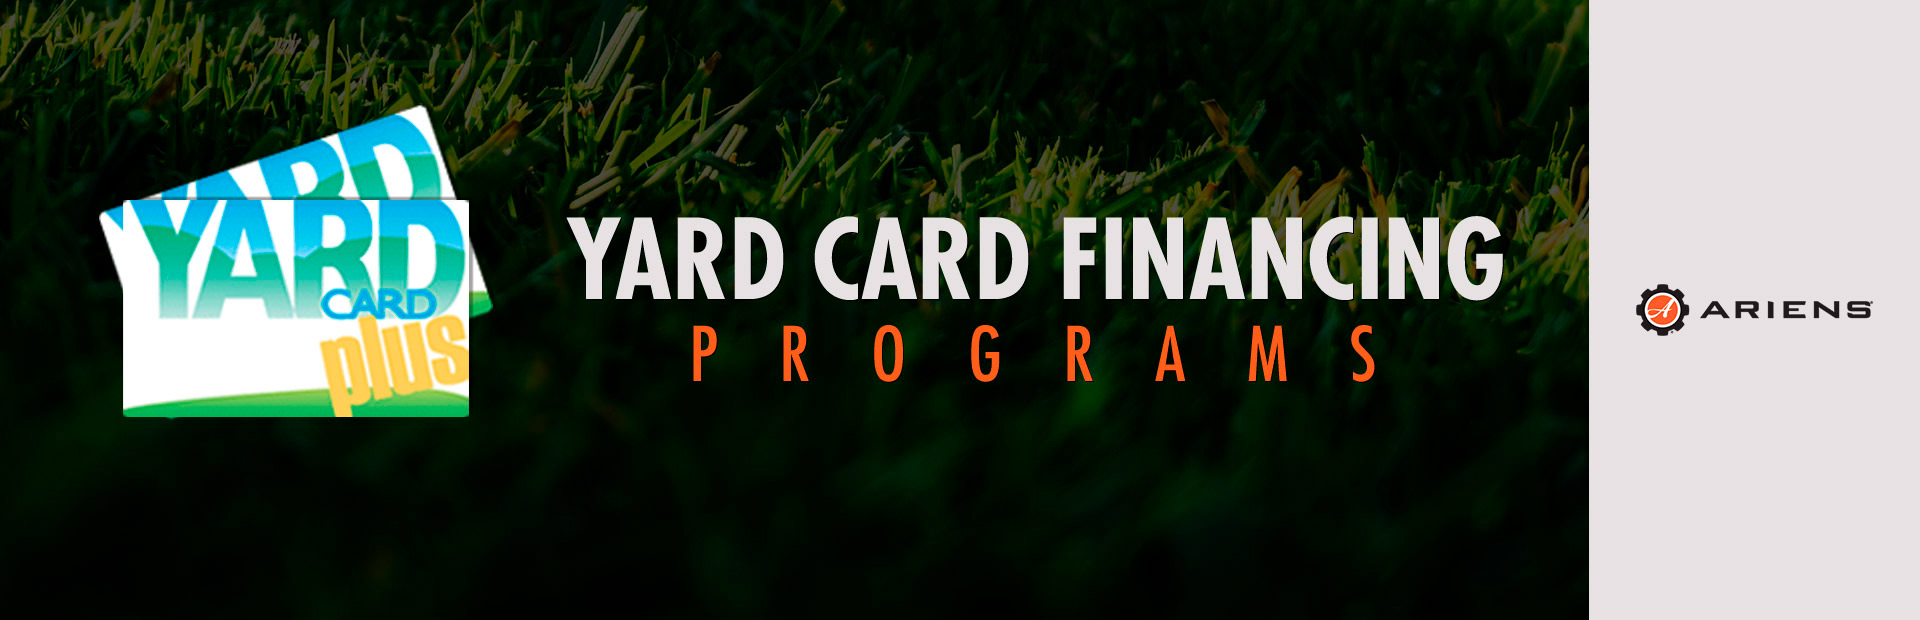 Ariens: Consumer/Commercial Yard Card Financing Programs